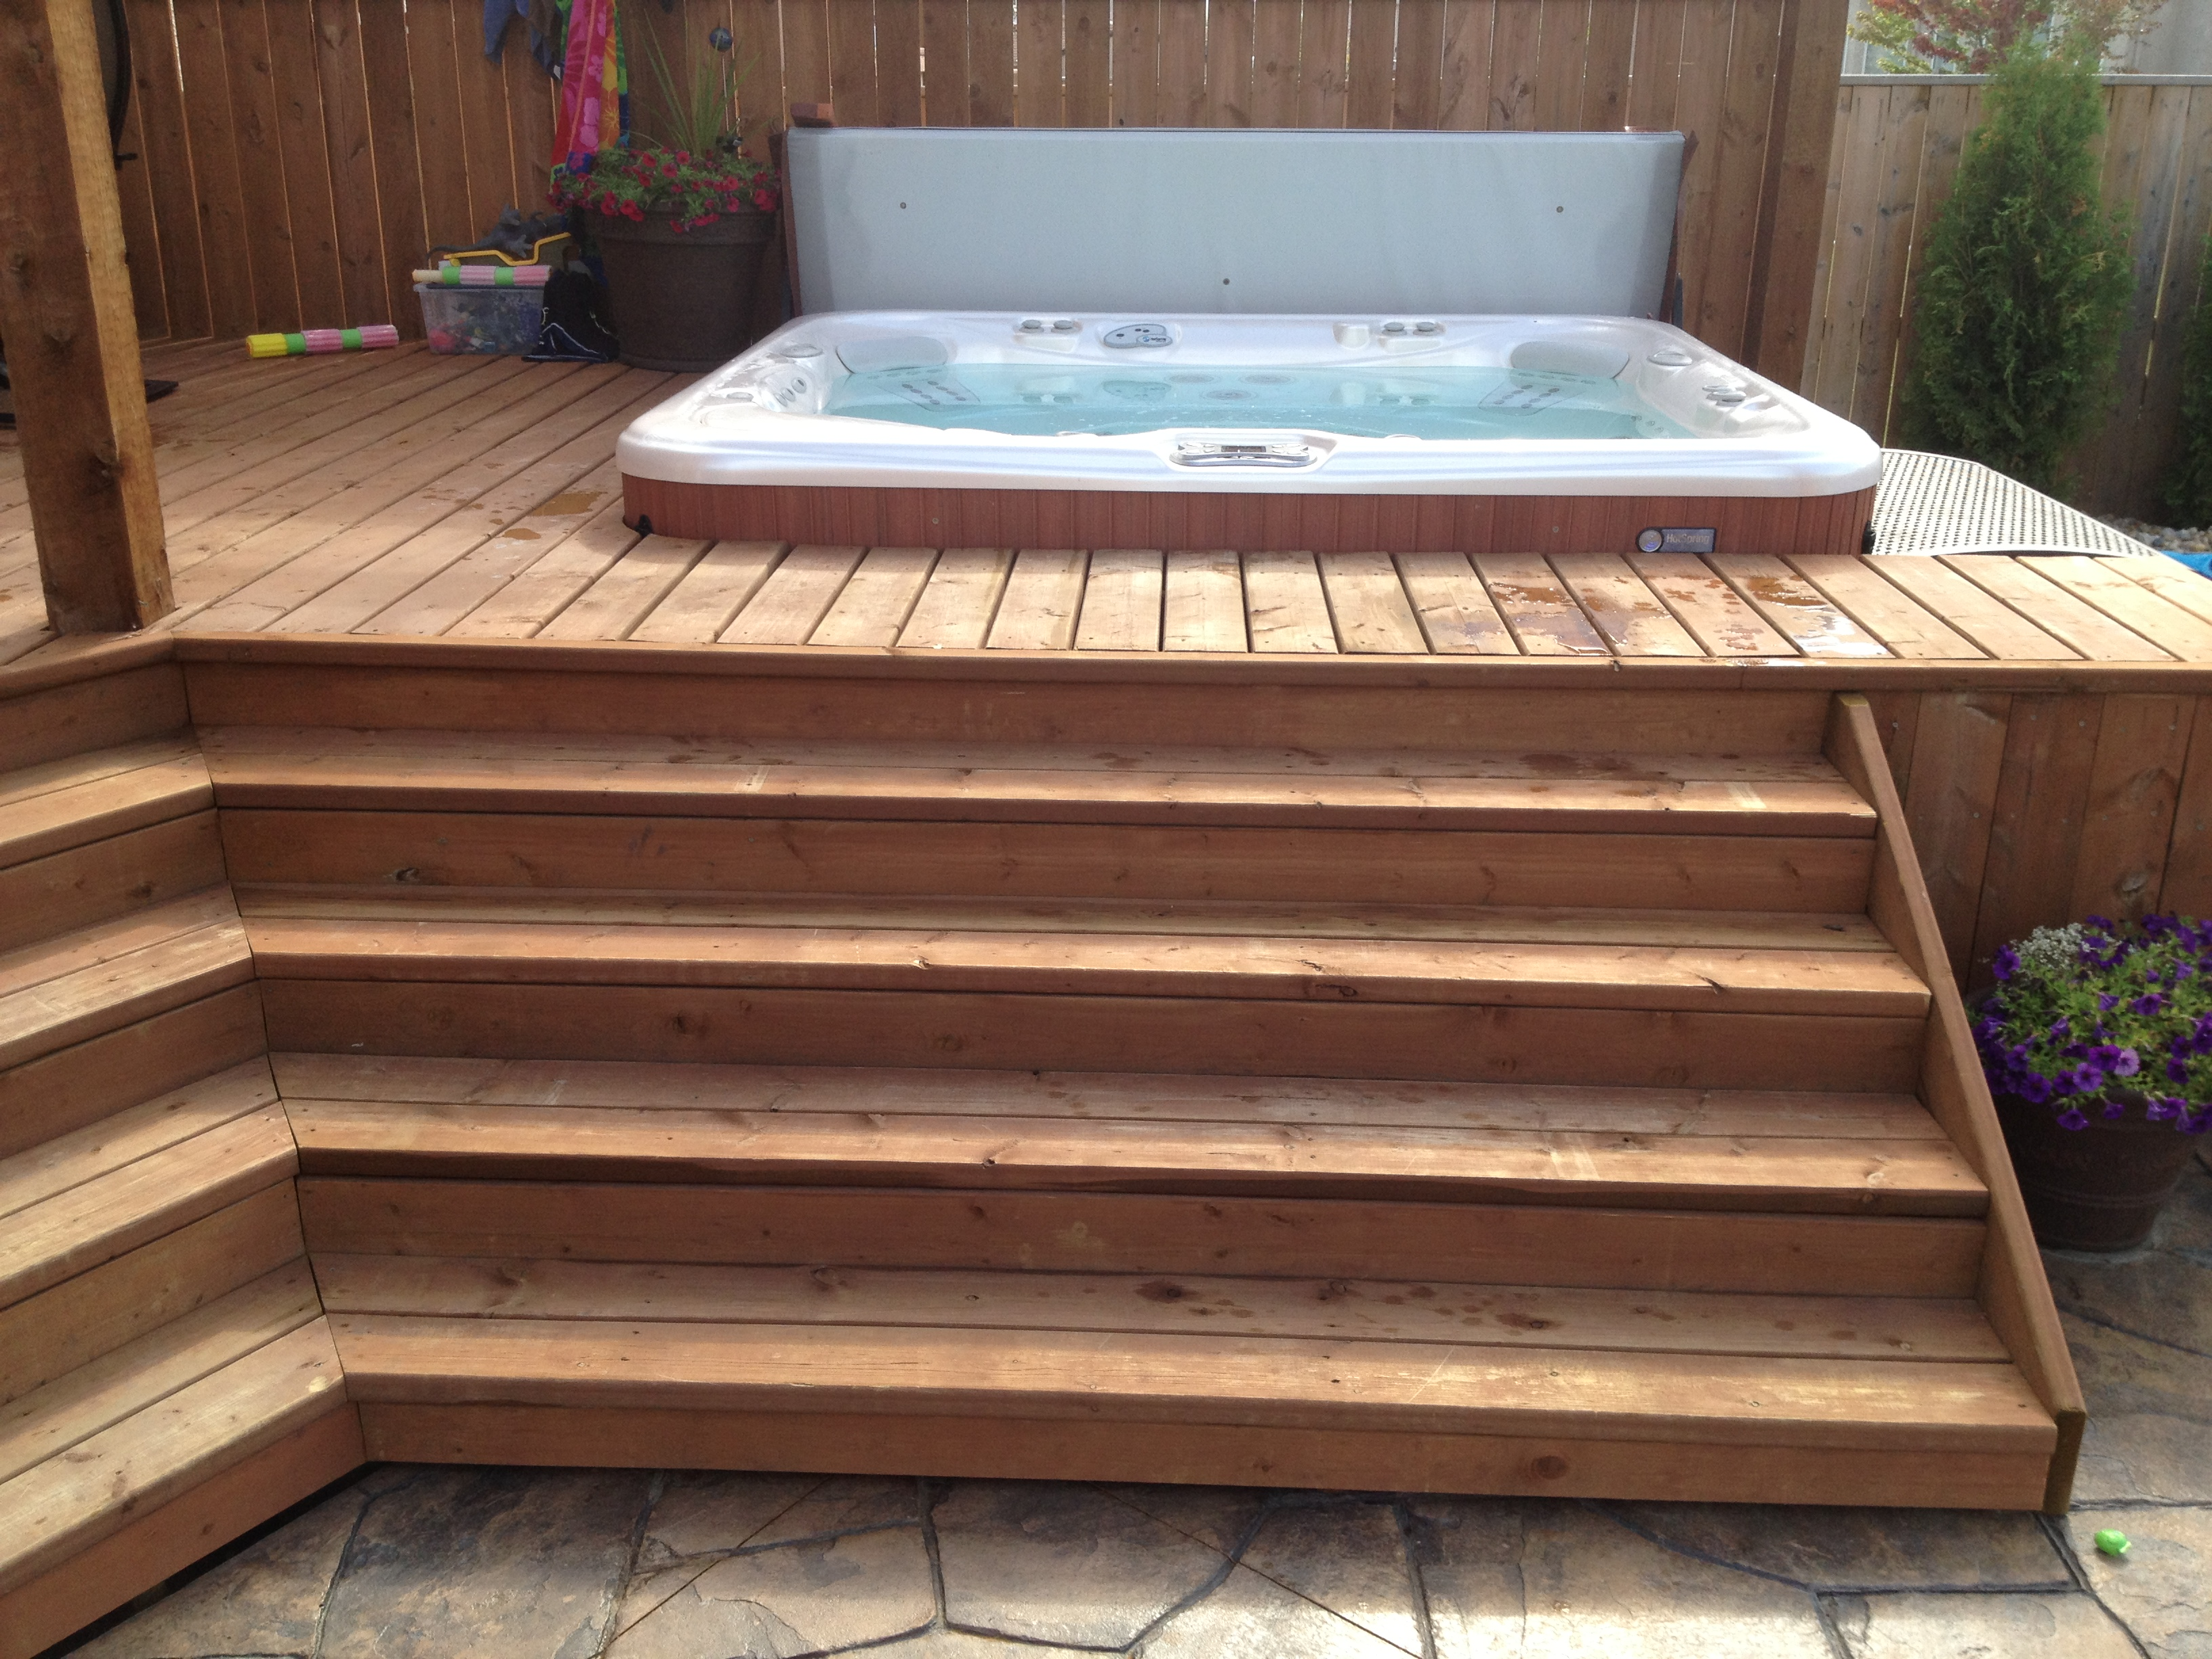 of hot enclosure tub with skirting placing your by in charlotte a archadeck for deck screen room custom on ideas stone